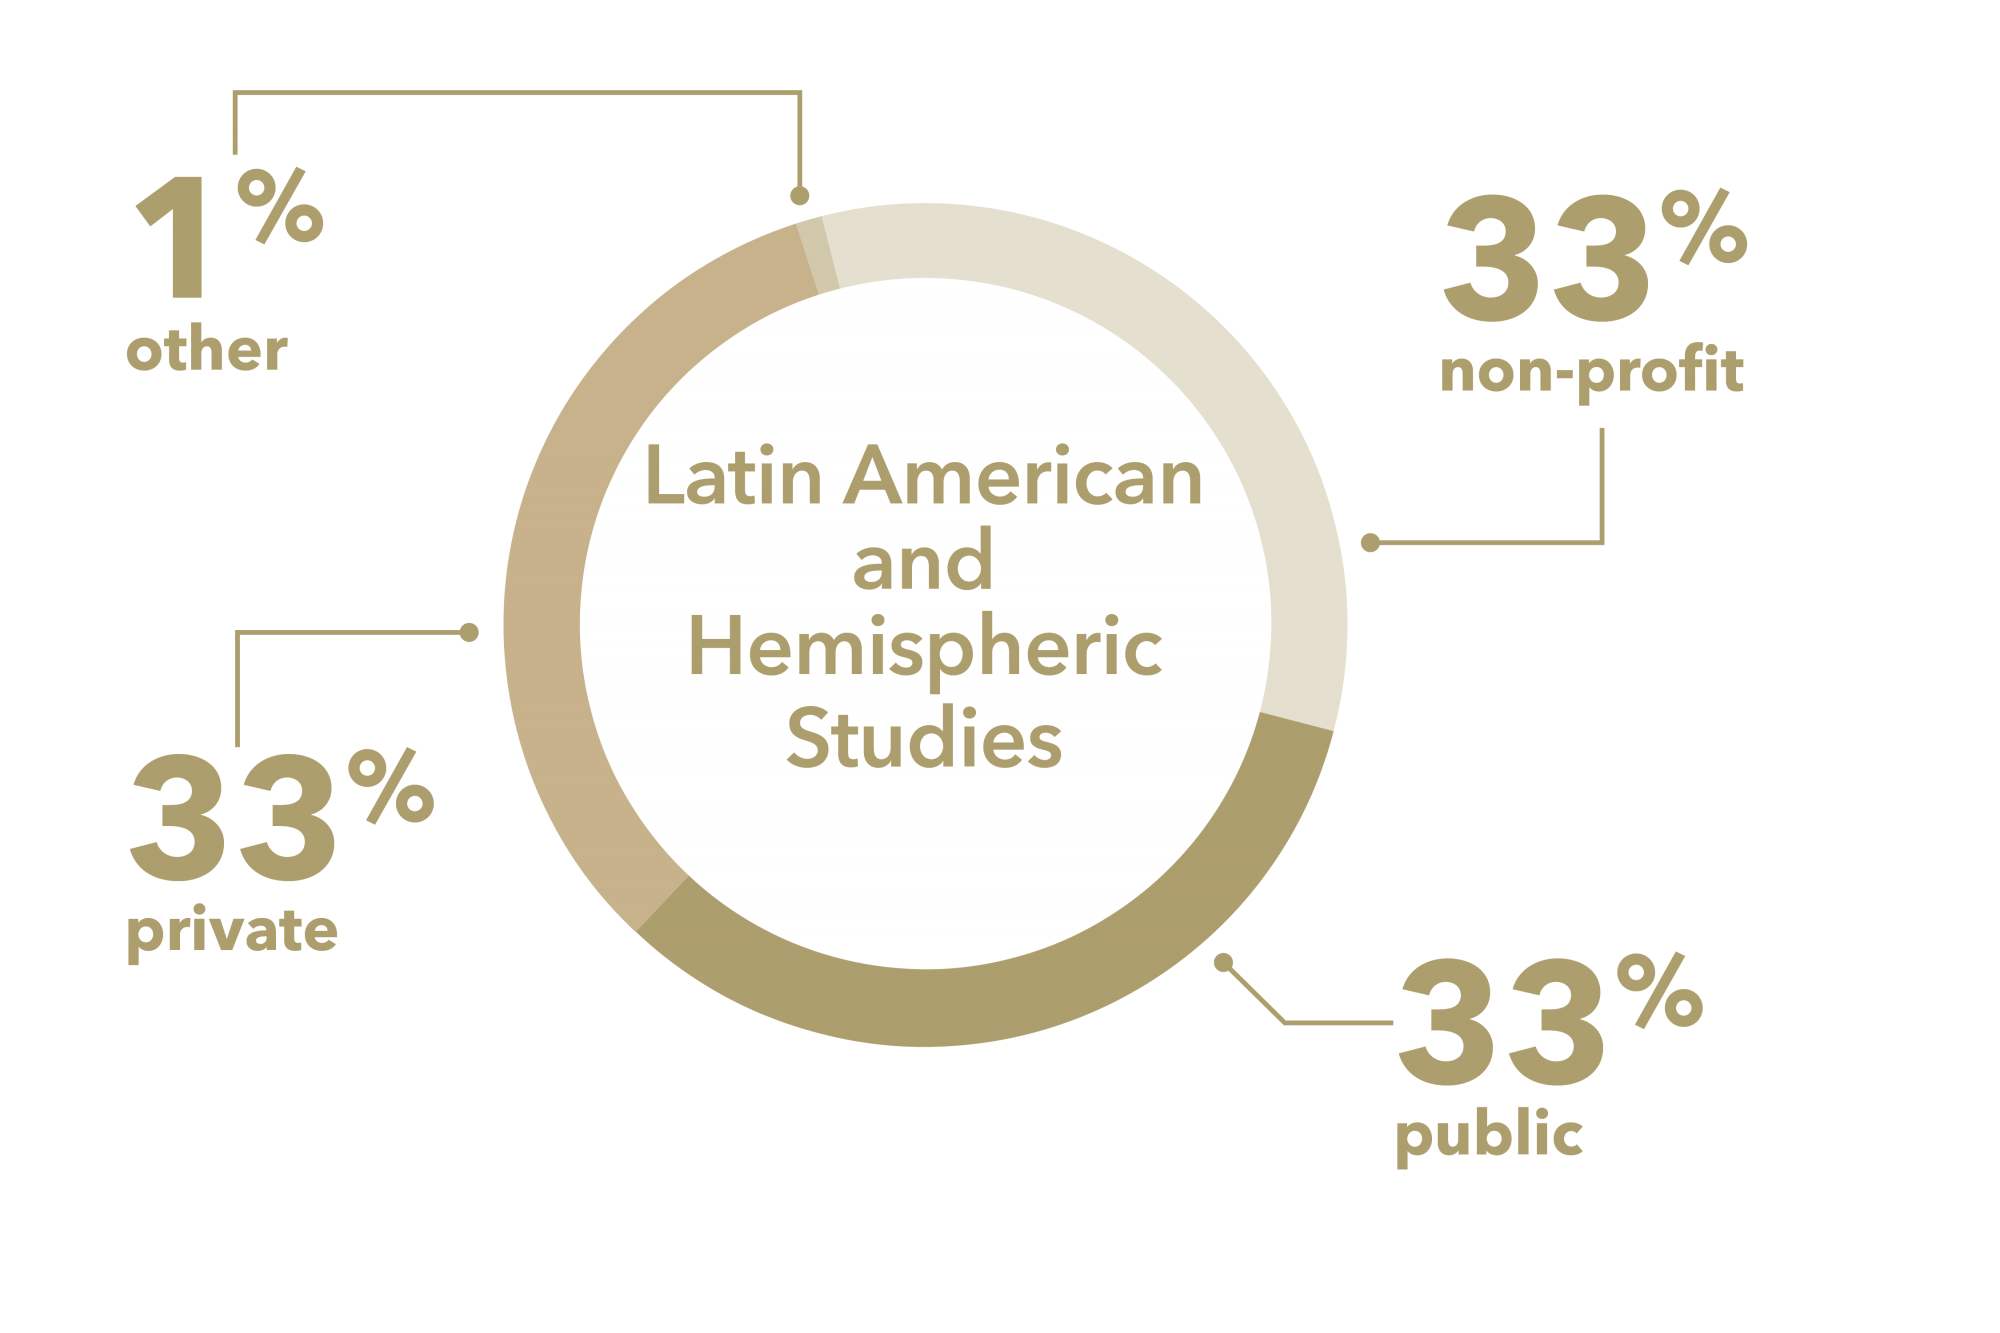 graphic: 33% private, 33% public, 33% non-profit, 1% other Latin American and Hemispheric Studies